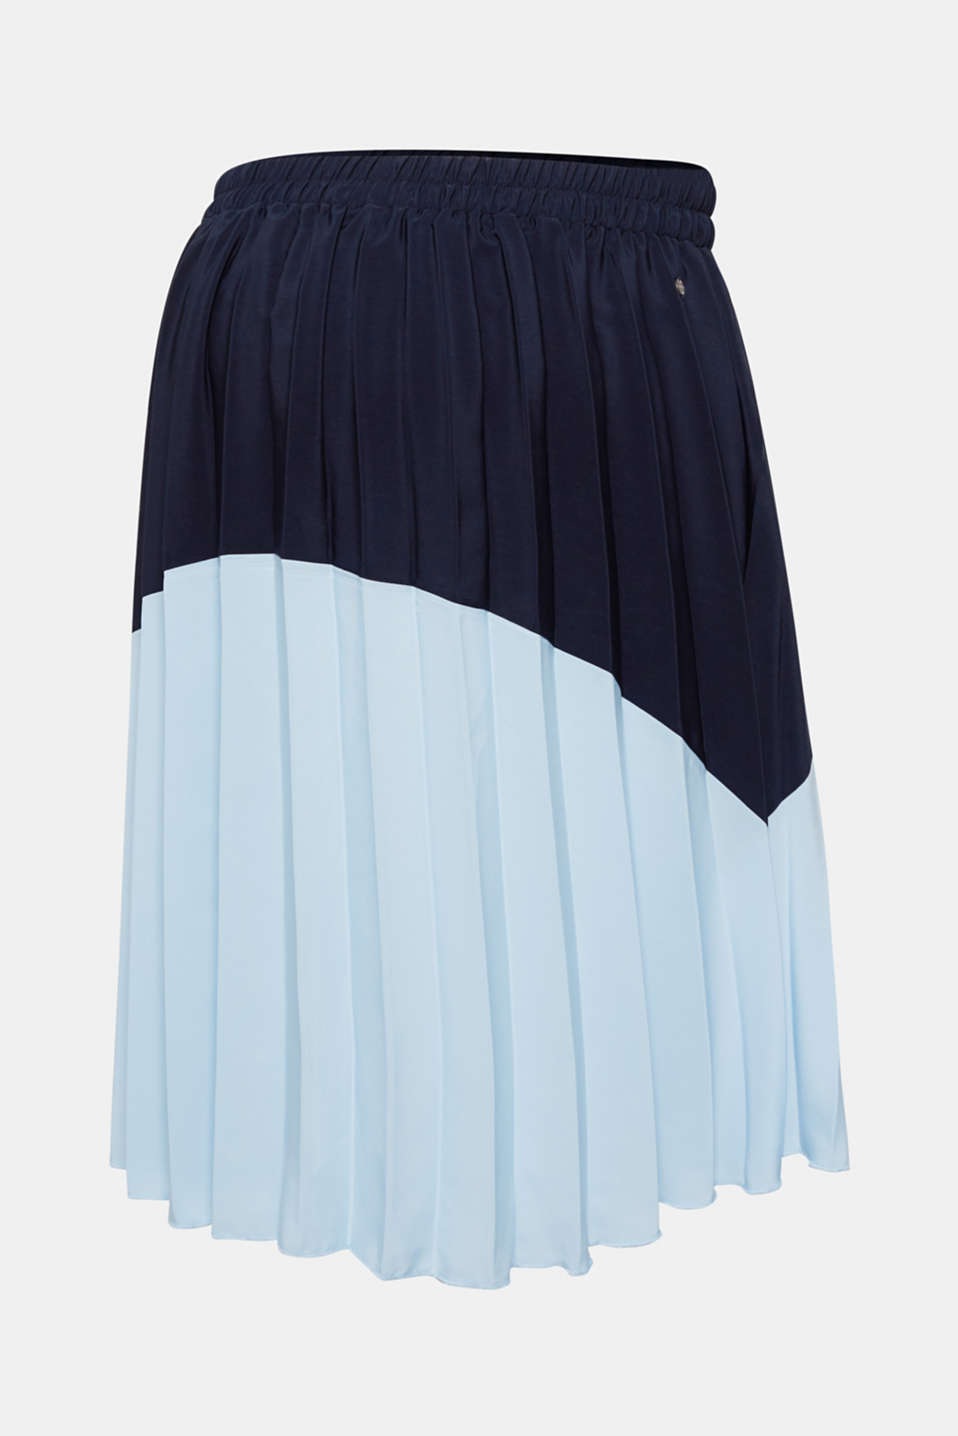 Bi-colour pleated skirt with an elasticated waistband, LCNIGHT BLUE, detail image number 1